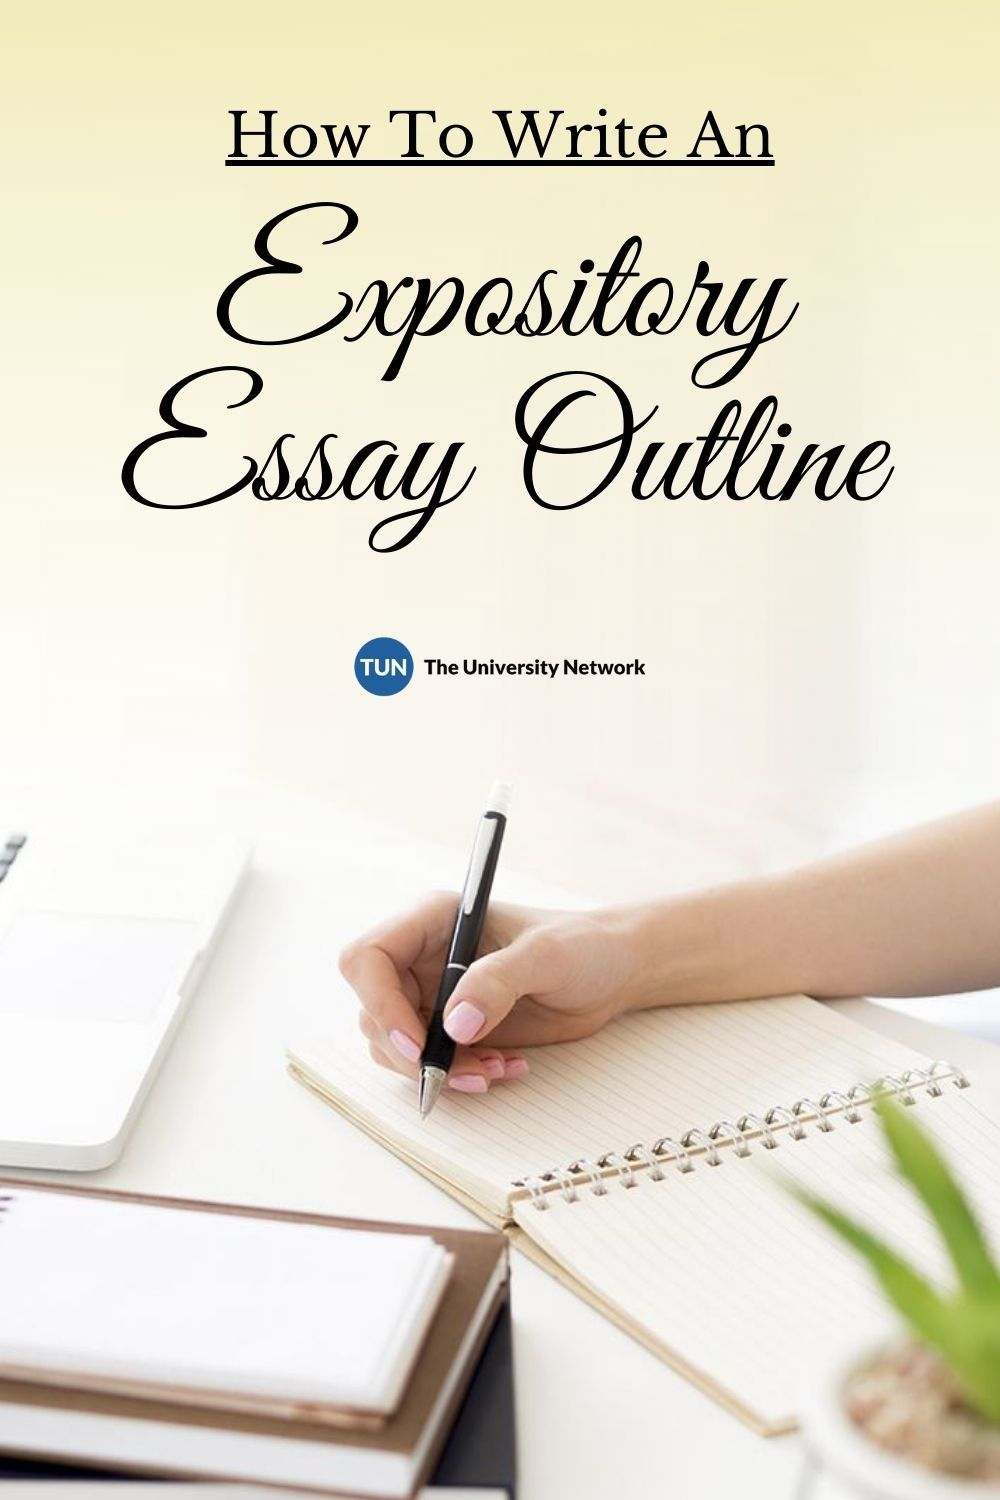 how to write an expository essay outline  the university